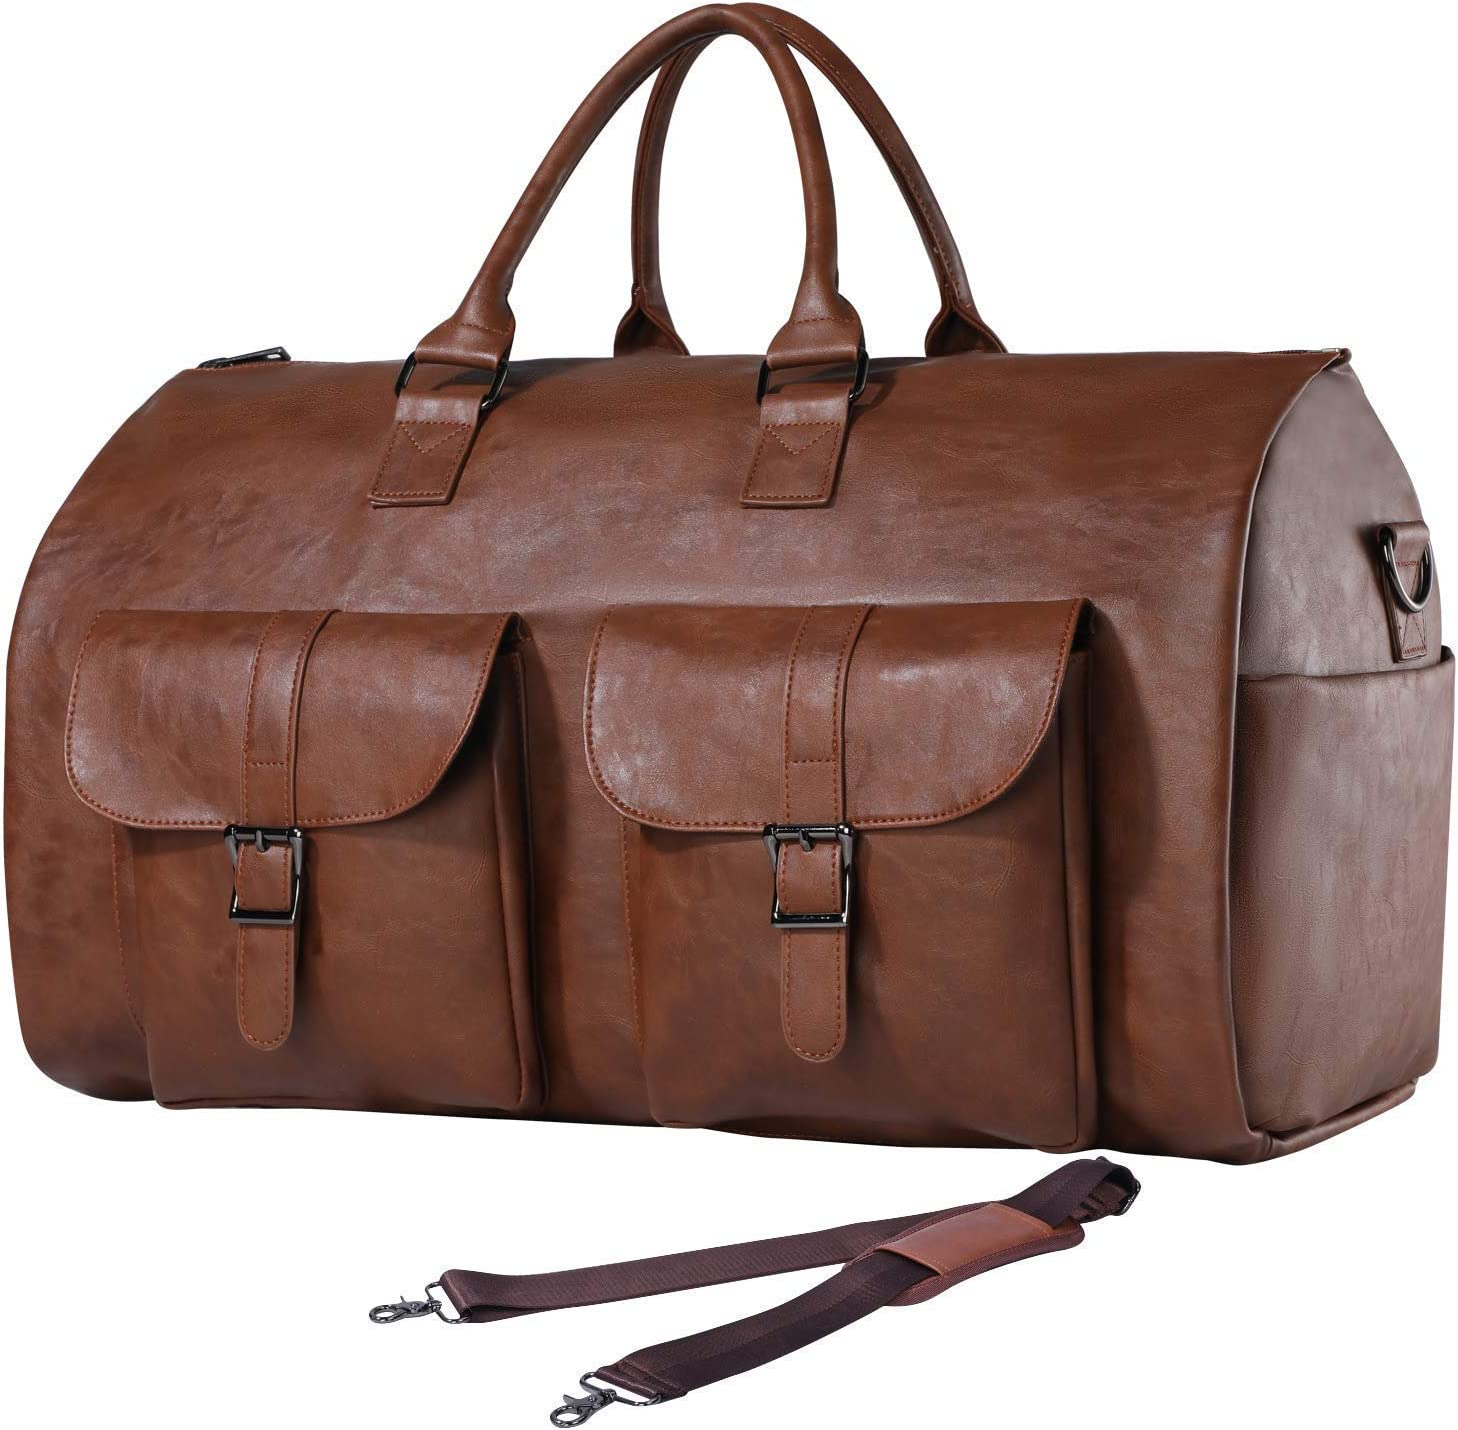 50-Inch Length Accommodates Suits /& Business Attire Swiss Gear Folding Carry On Garment Bag with Pockets Black One Size